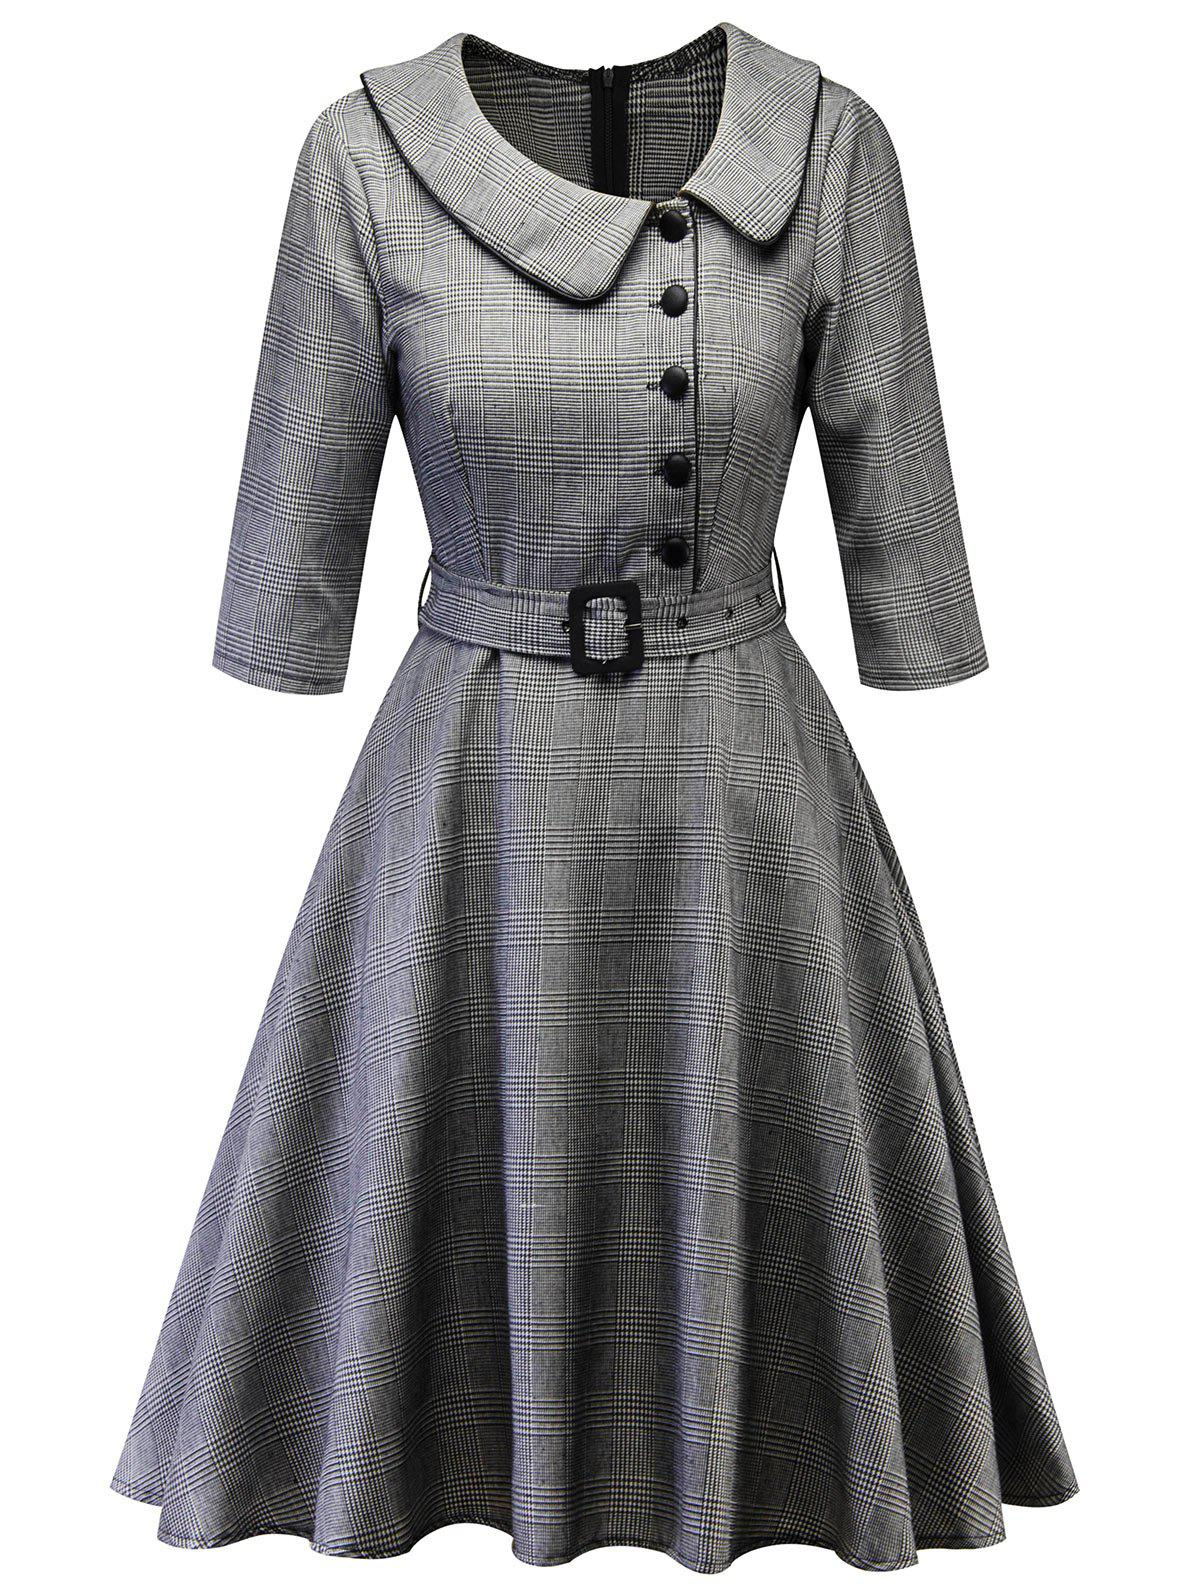 Buy Plaid Peter Pan Collar Vintage Dress